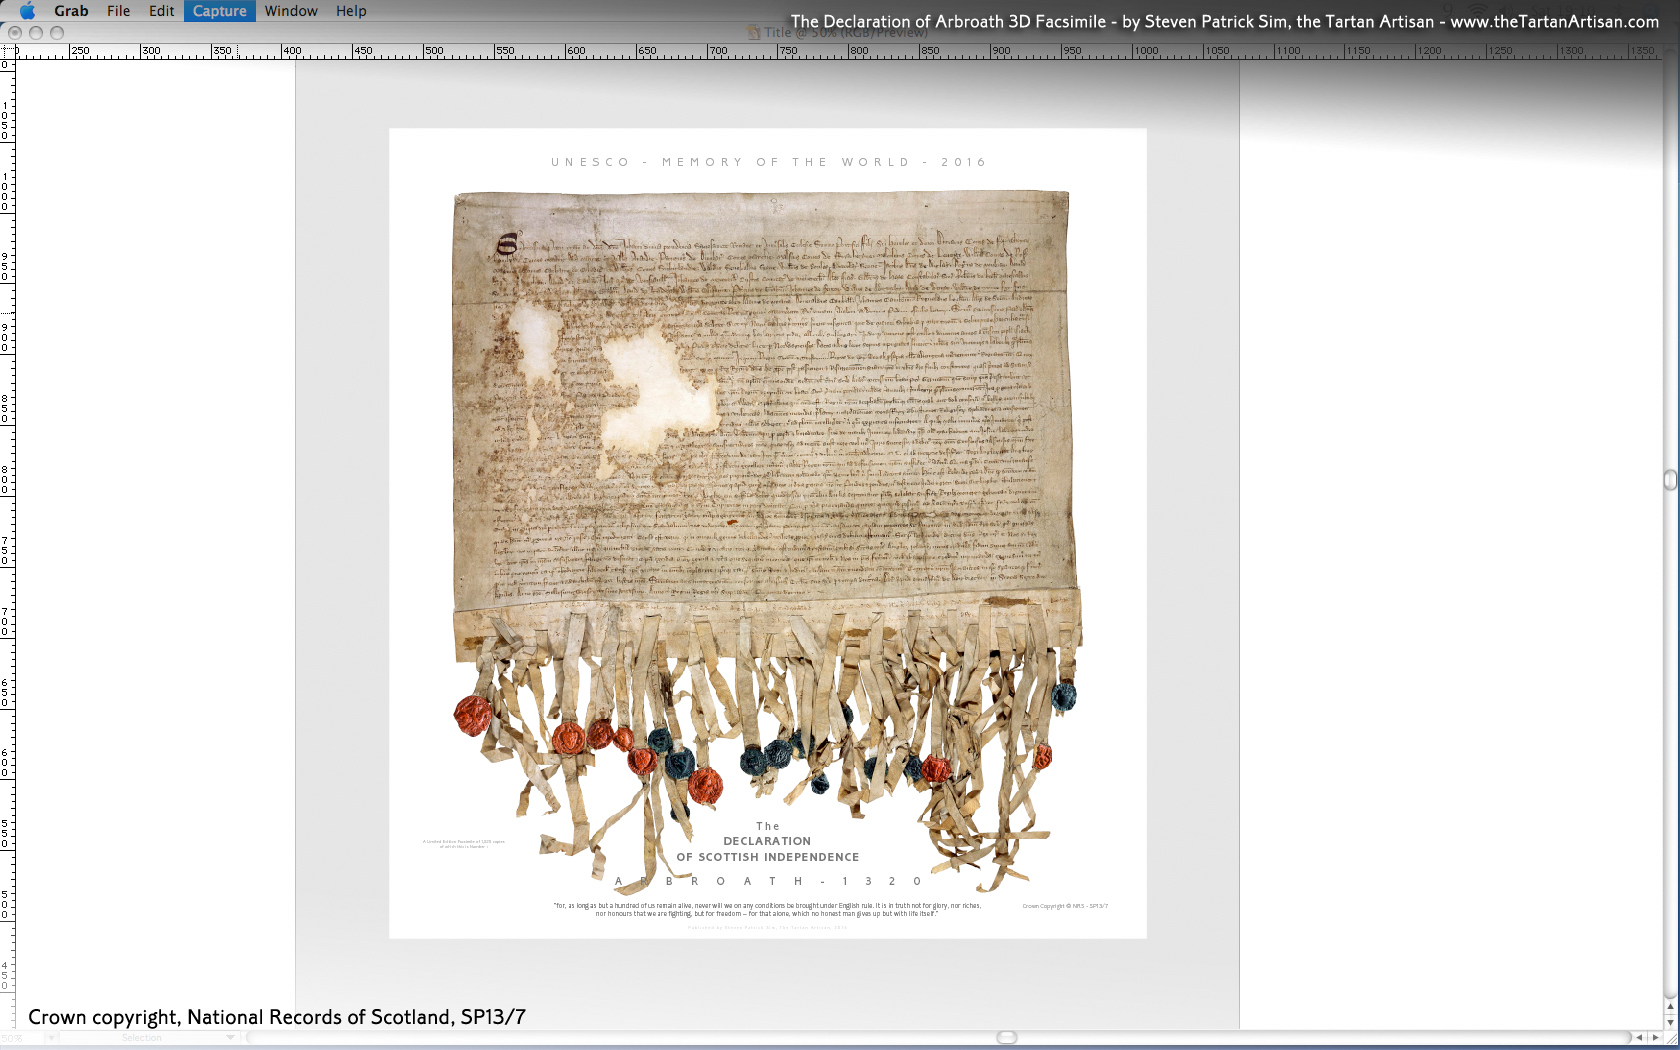 Declaration of Arbroath Facsimile